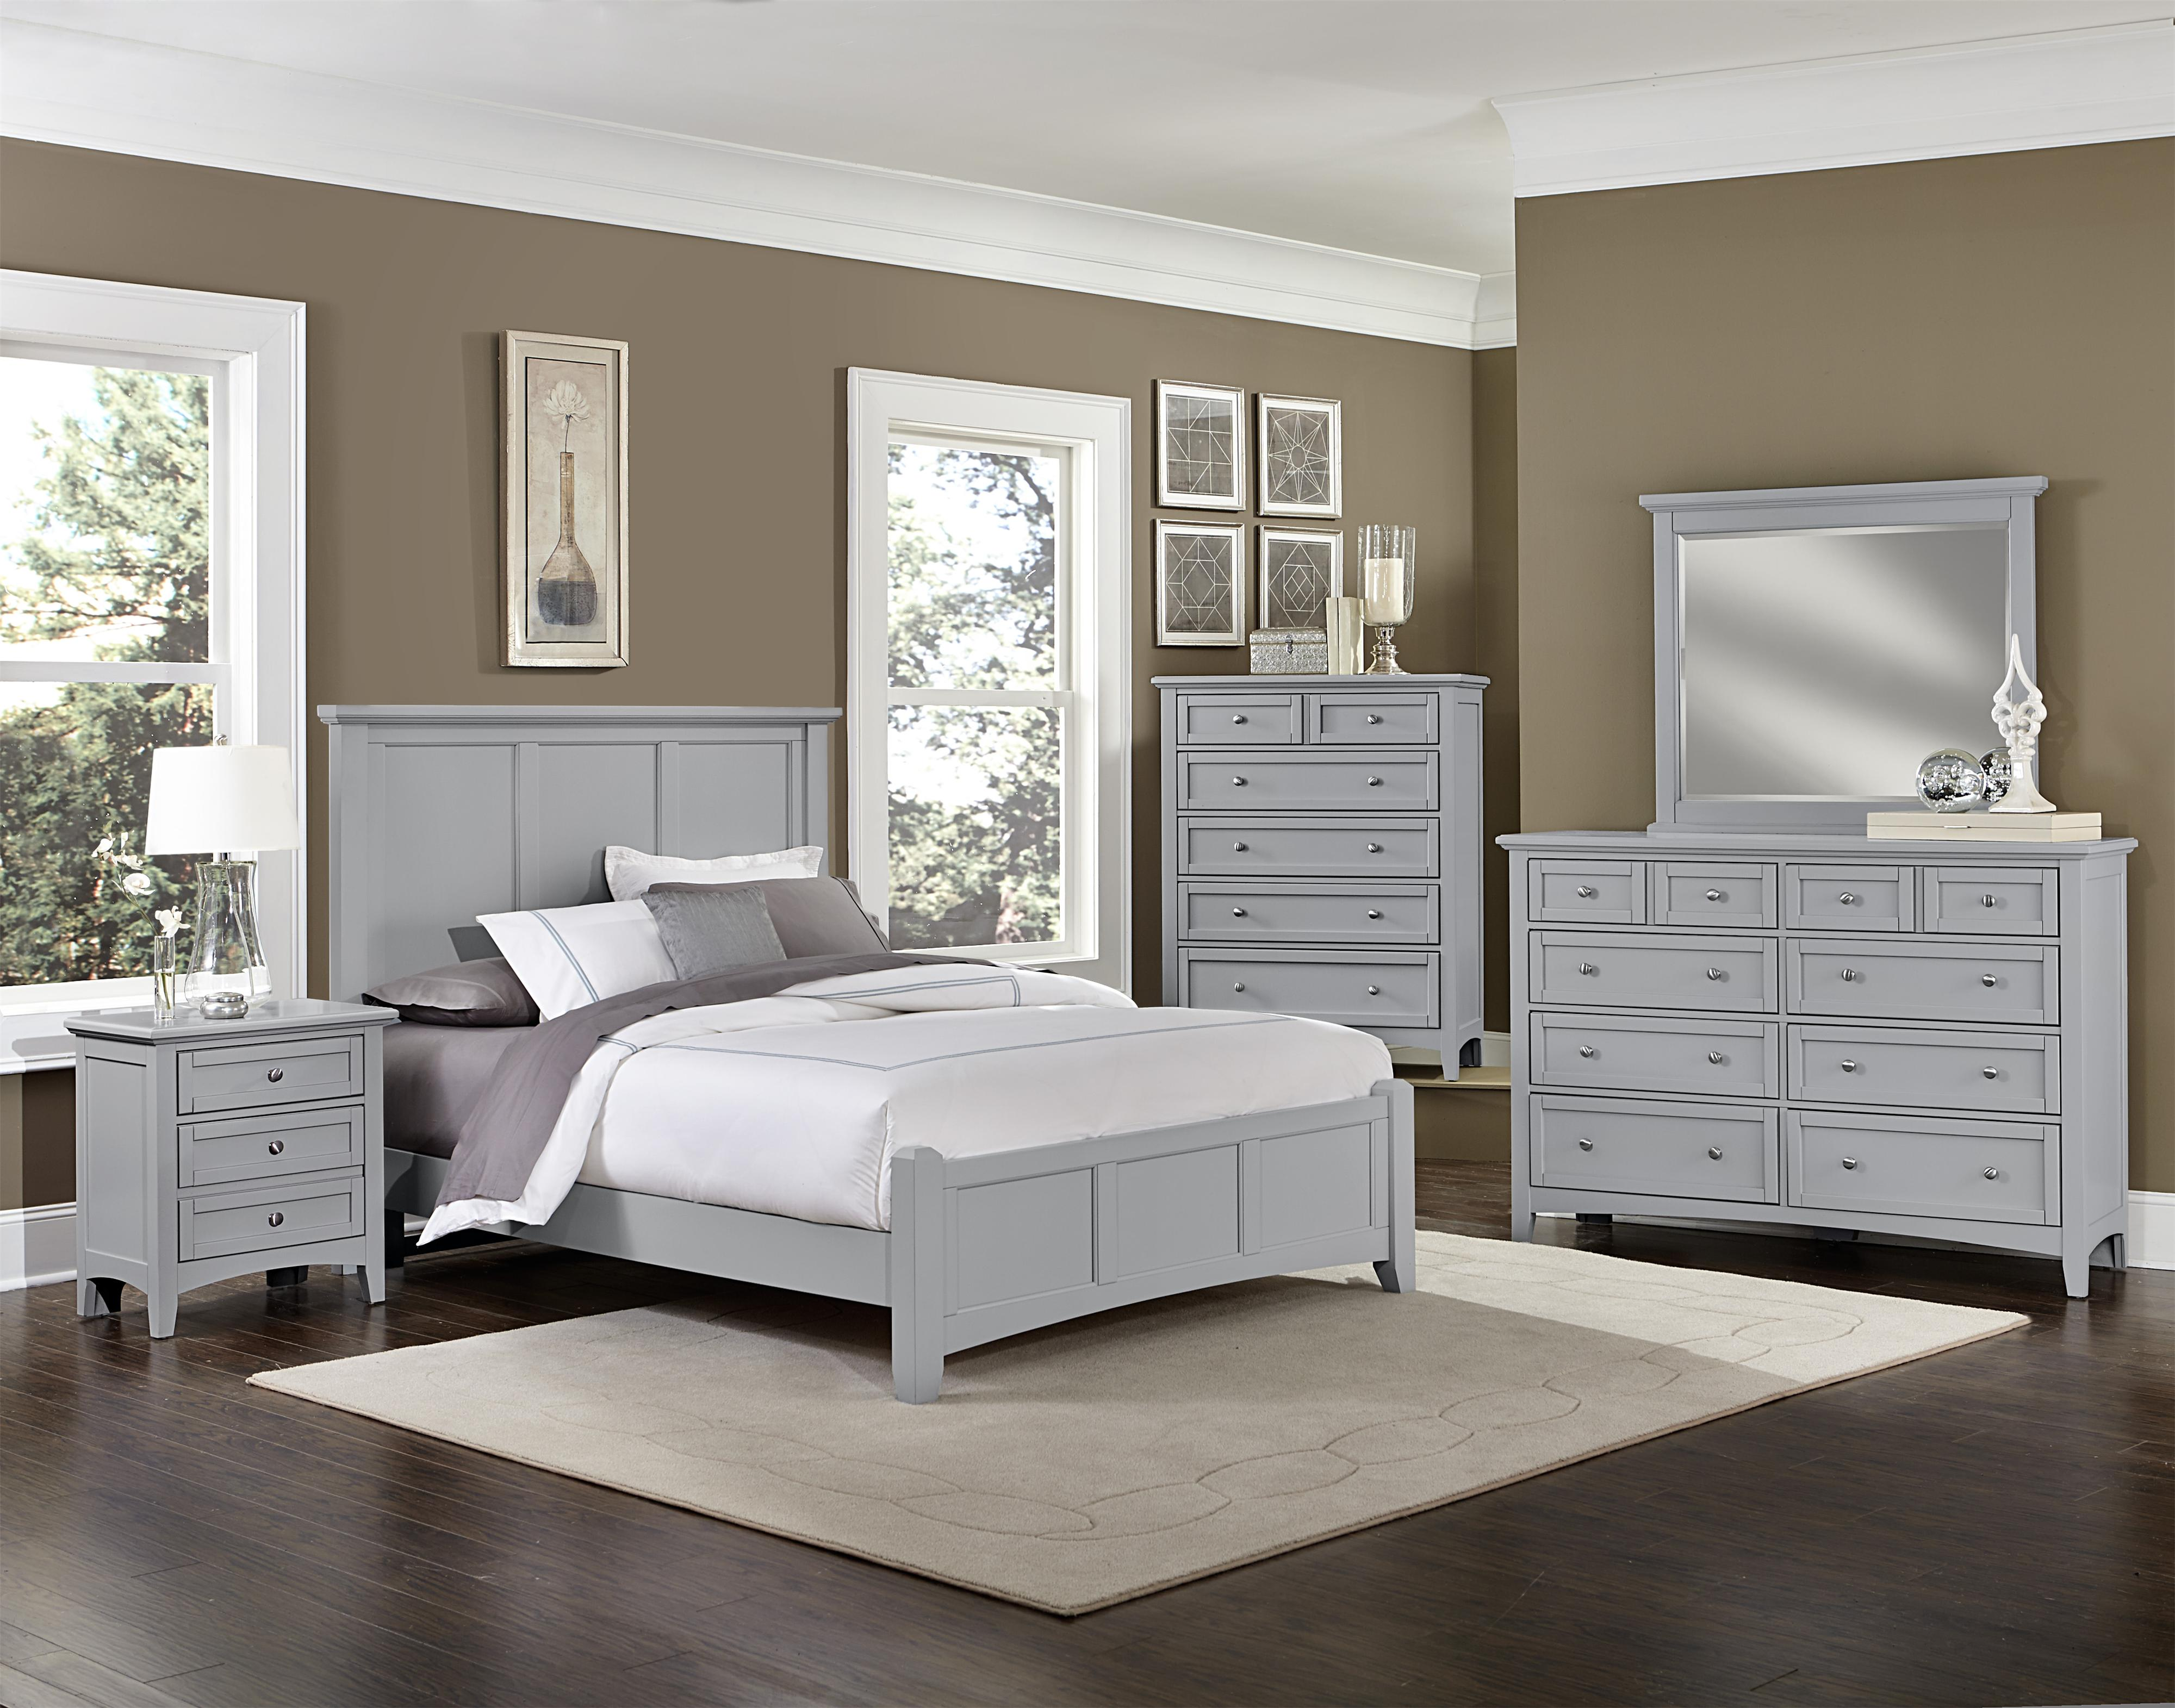 Bonanza King Bedroom Group by Vaughan Bassett at Johnny Janosik